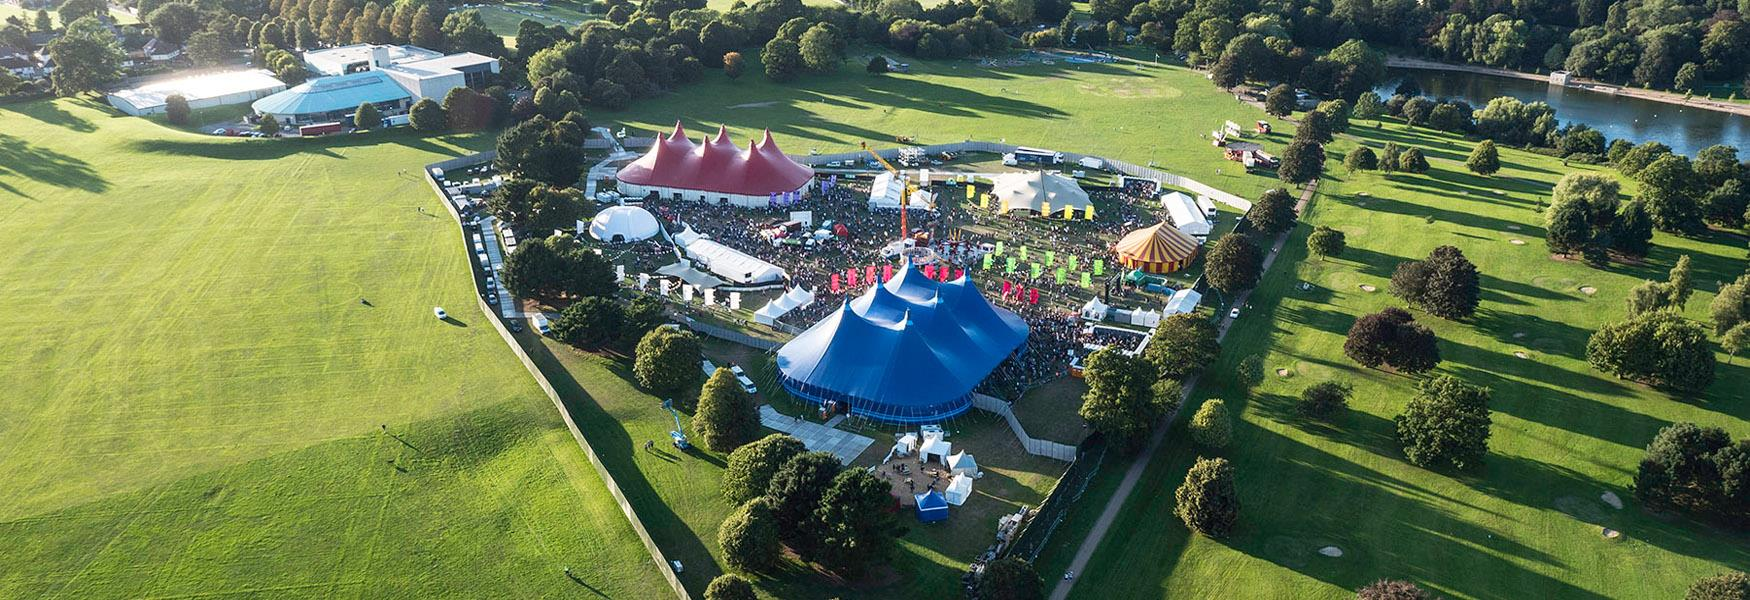 Aerial view of a Festival in Mote Park